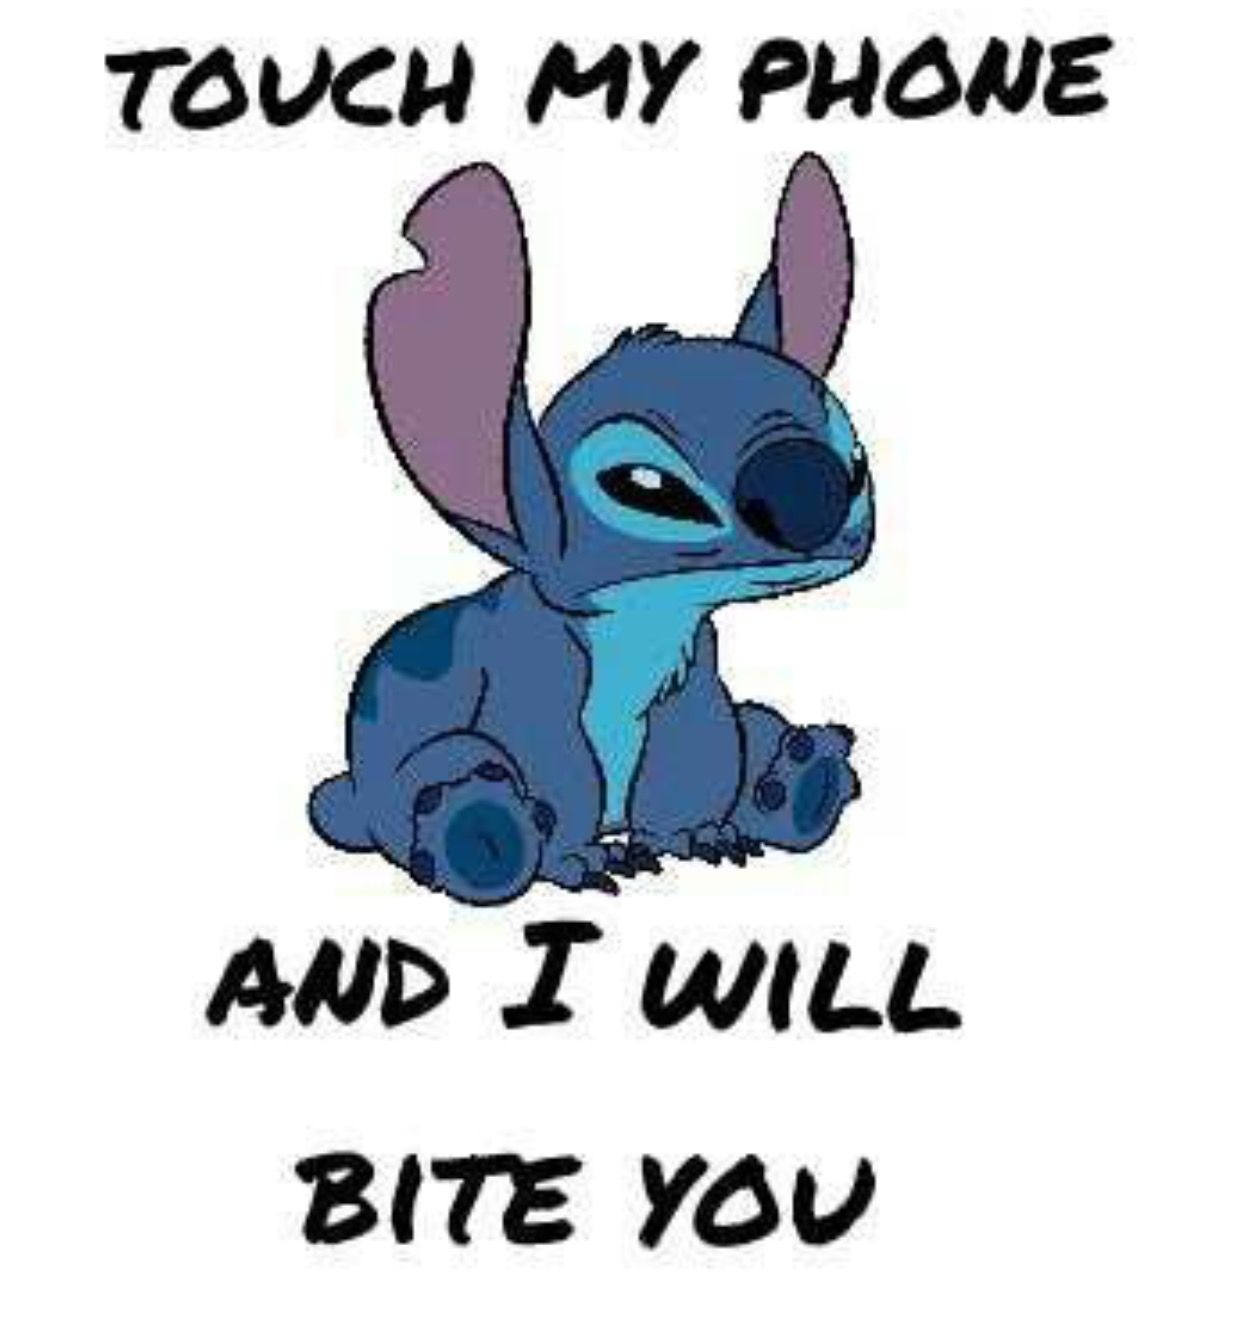 Pin By Kevinandjanica Burton On Hungry Tough Funny Phone Wallpaper Lilo And Stitch Quotes Funny Wallpapers